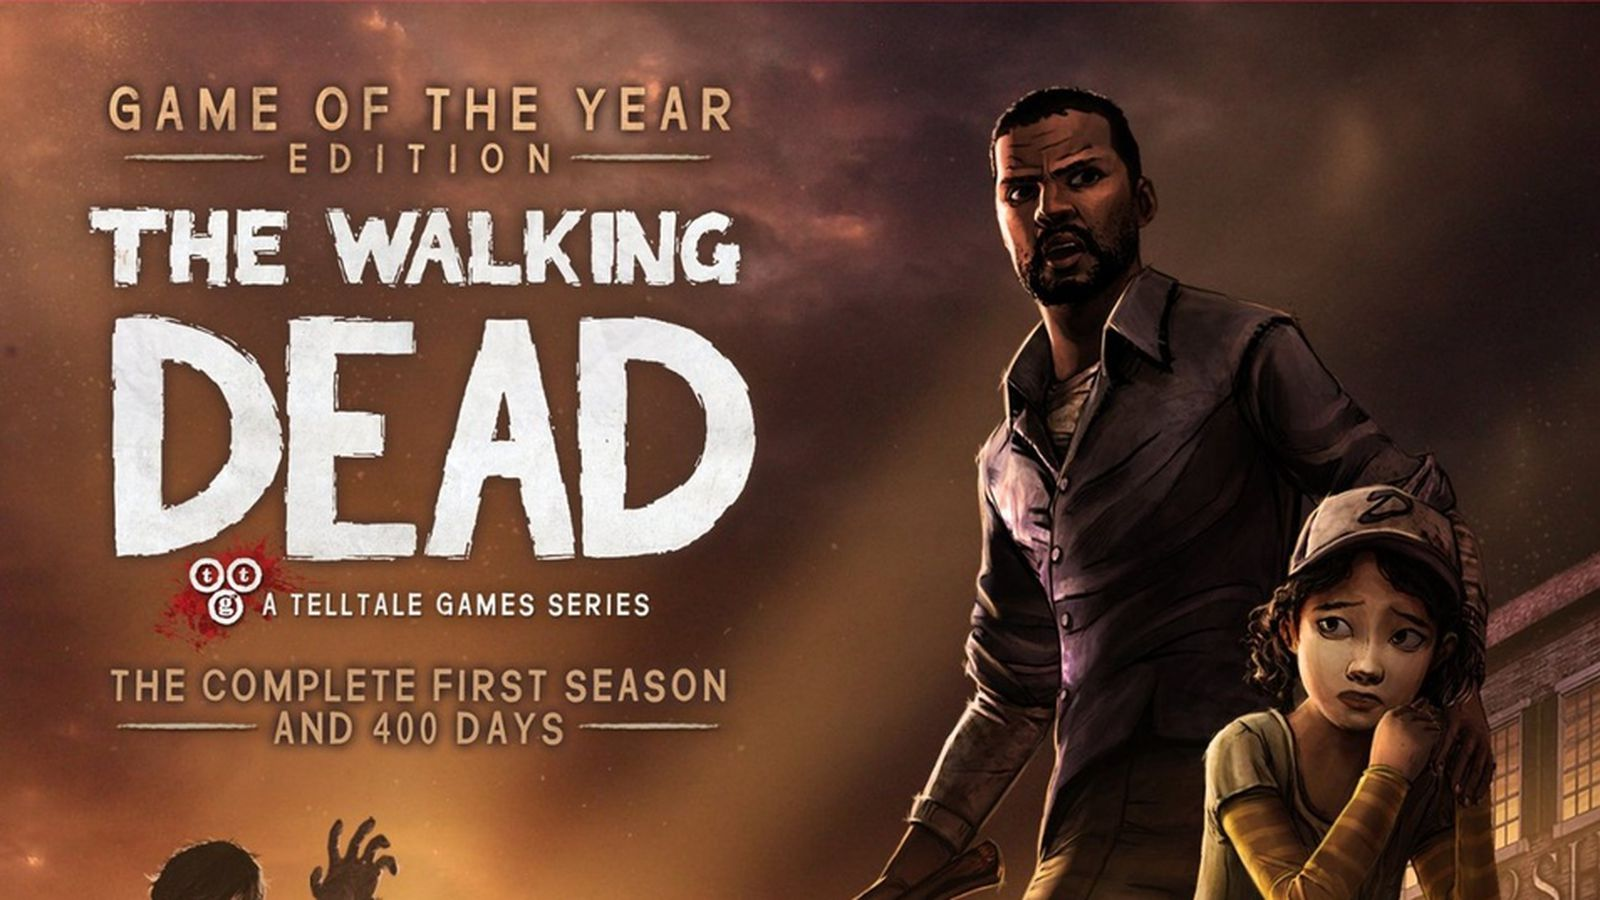 The Walking Dead GOTY Edition includes Season One and 400 Days for $29.99 -  Polygon